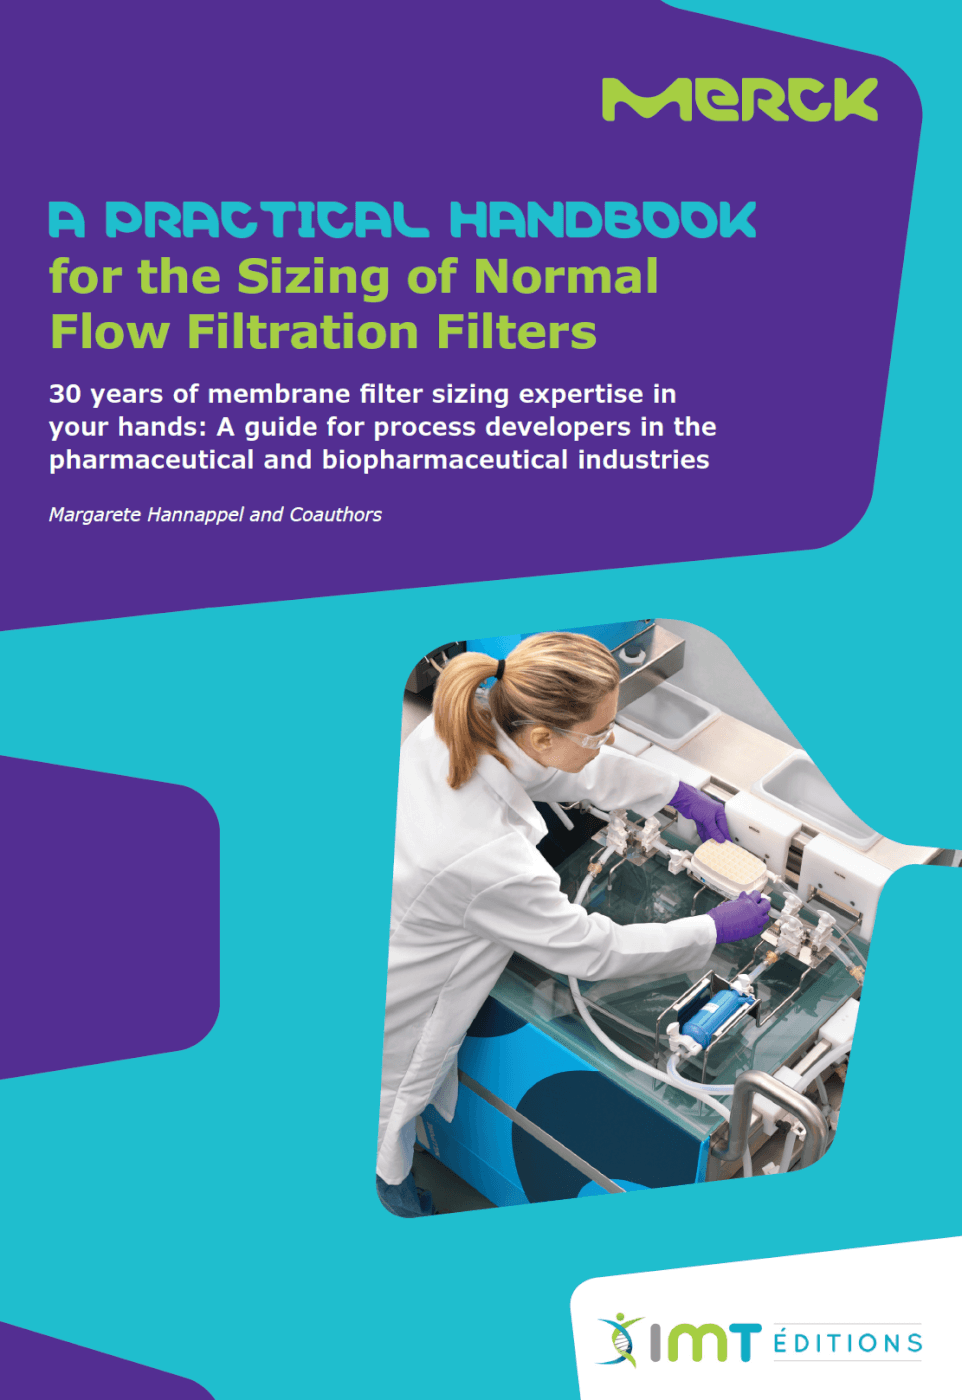 A practical Handbook for the Sizing of Normal Flow Filtration Filters